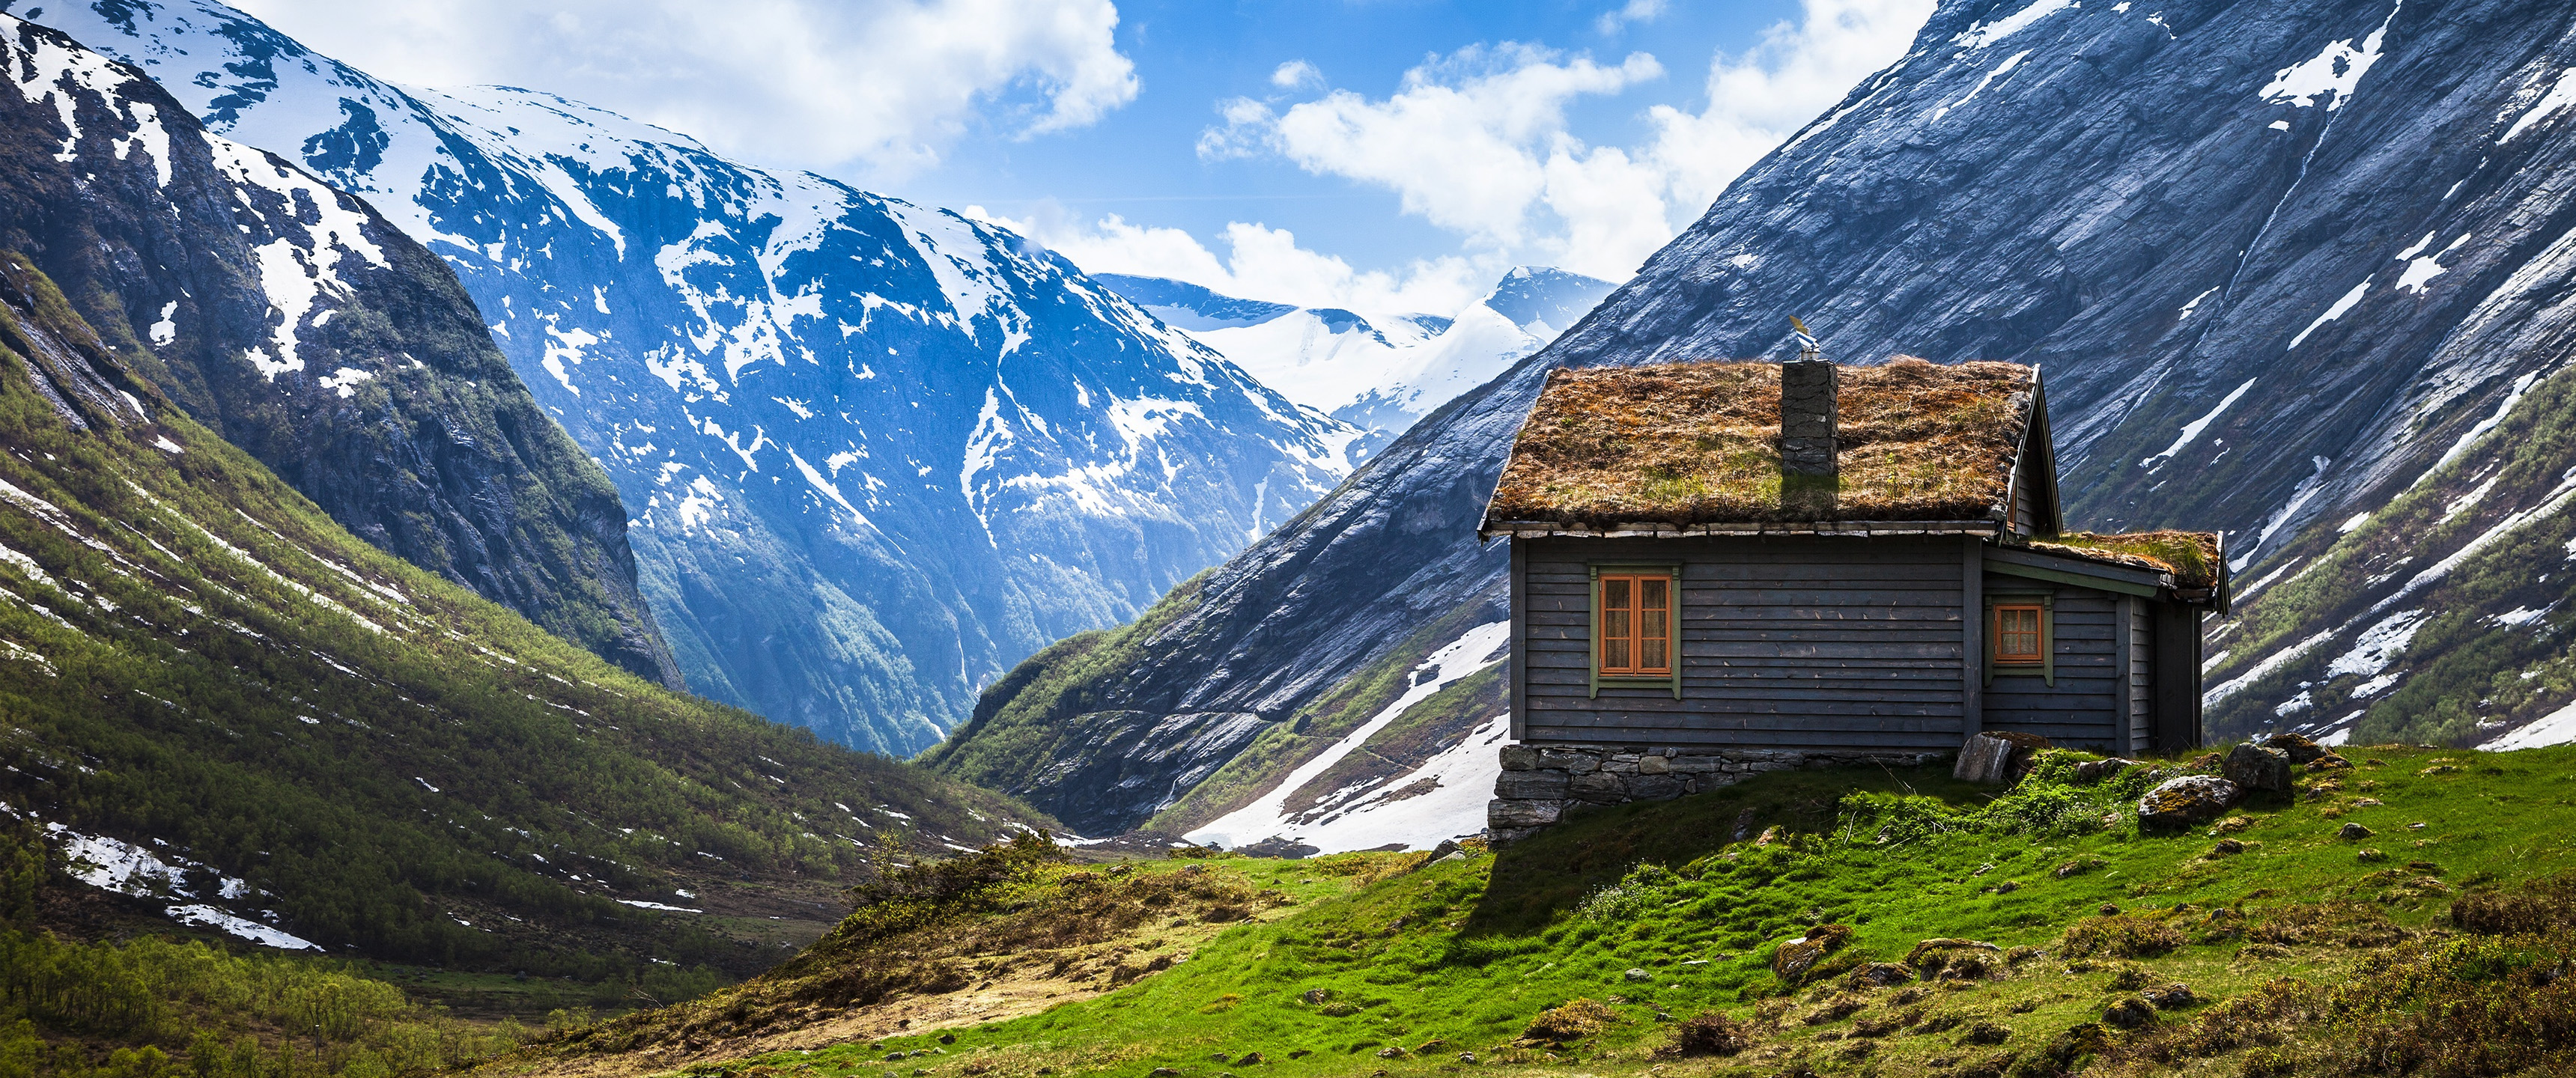 Single Cabin 219 Wallpaper Ultrawide Monitor 219 Wallpapers 3440x1440